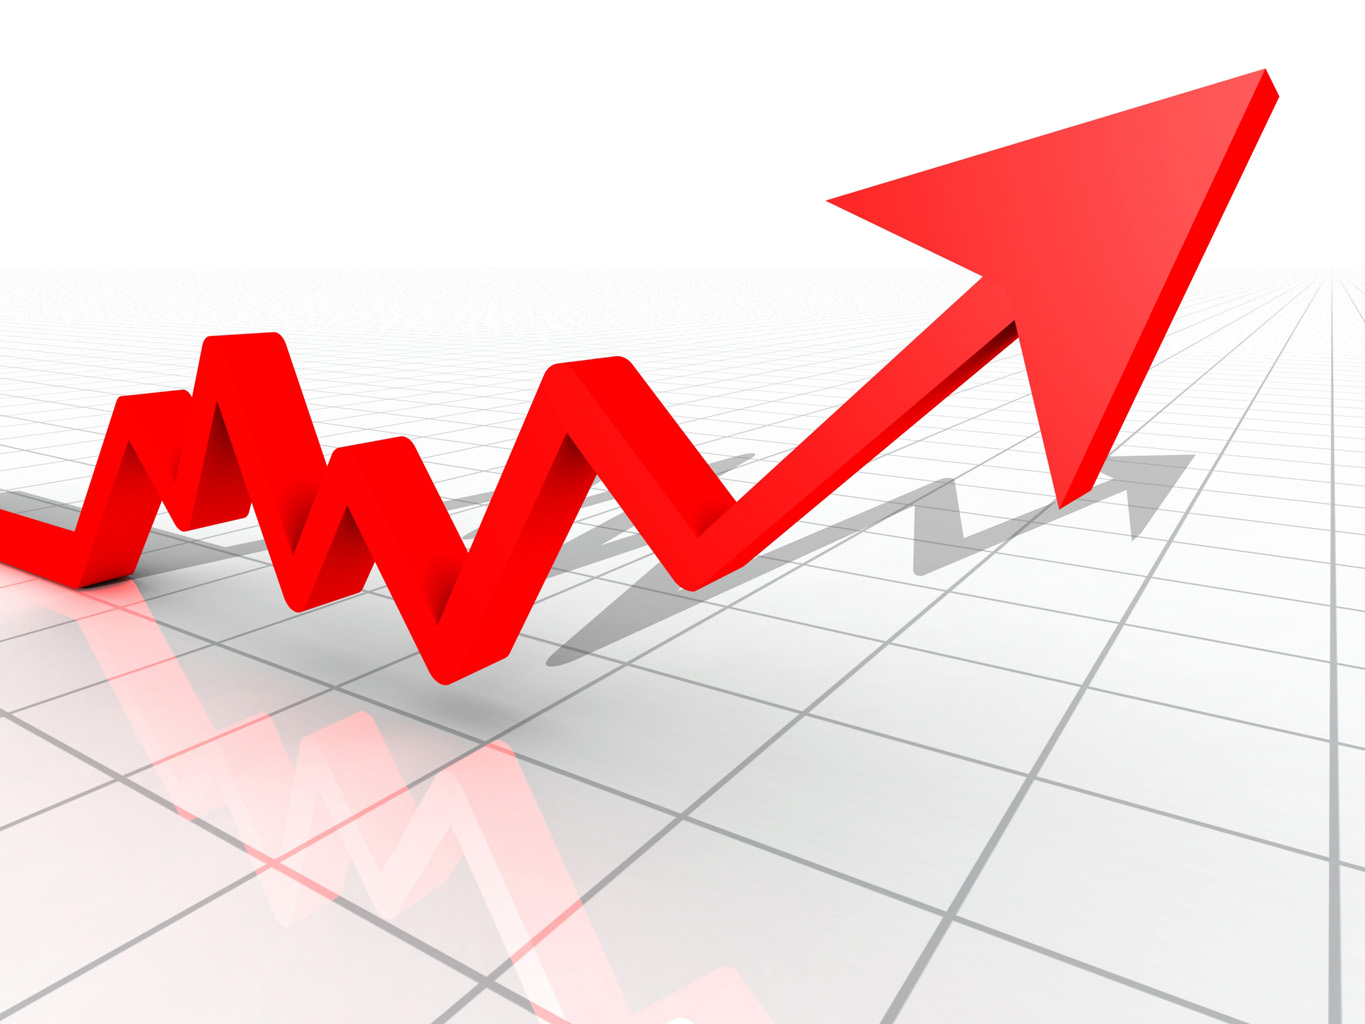 Recession in Cyprus accelerates to 5.9% in Q2 2013